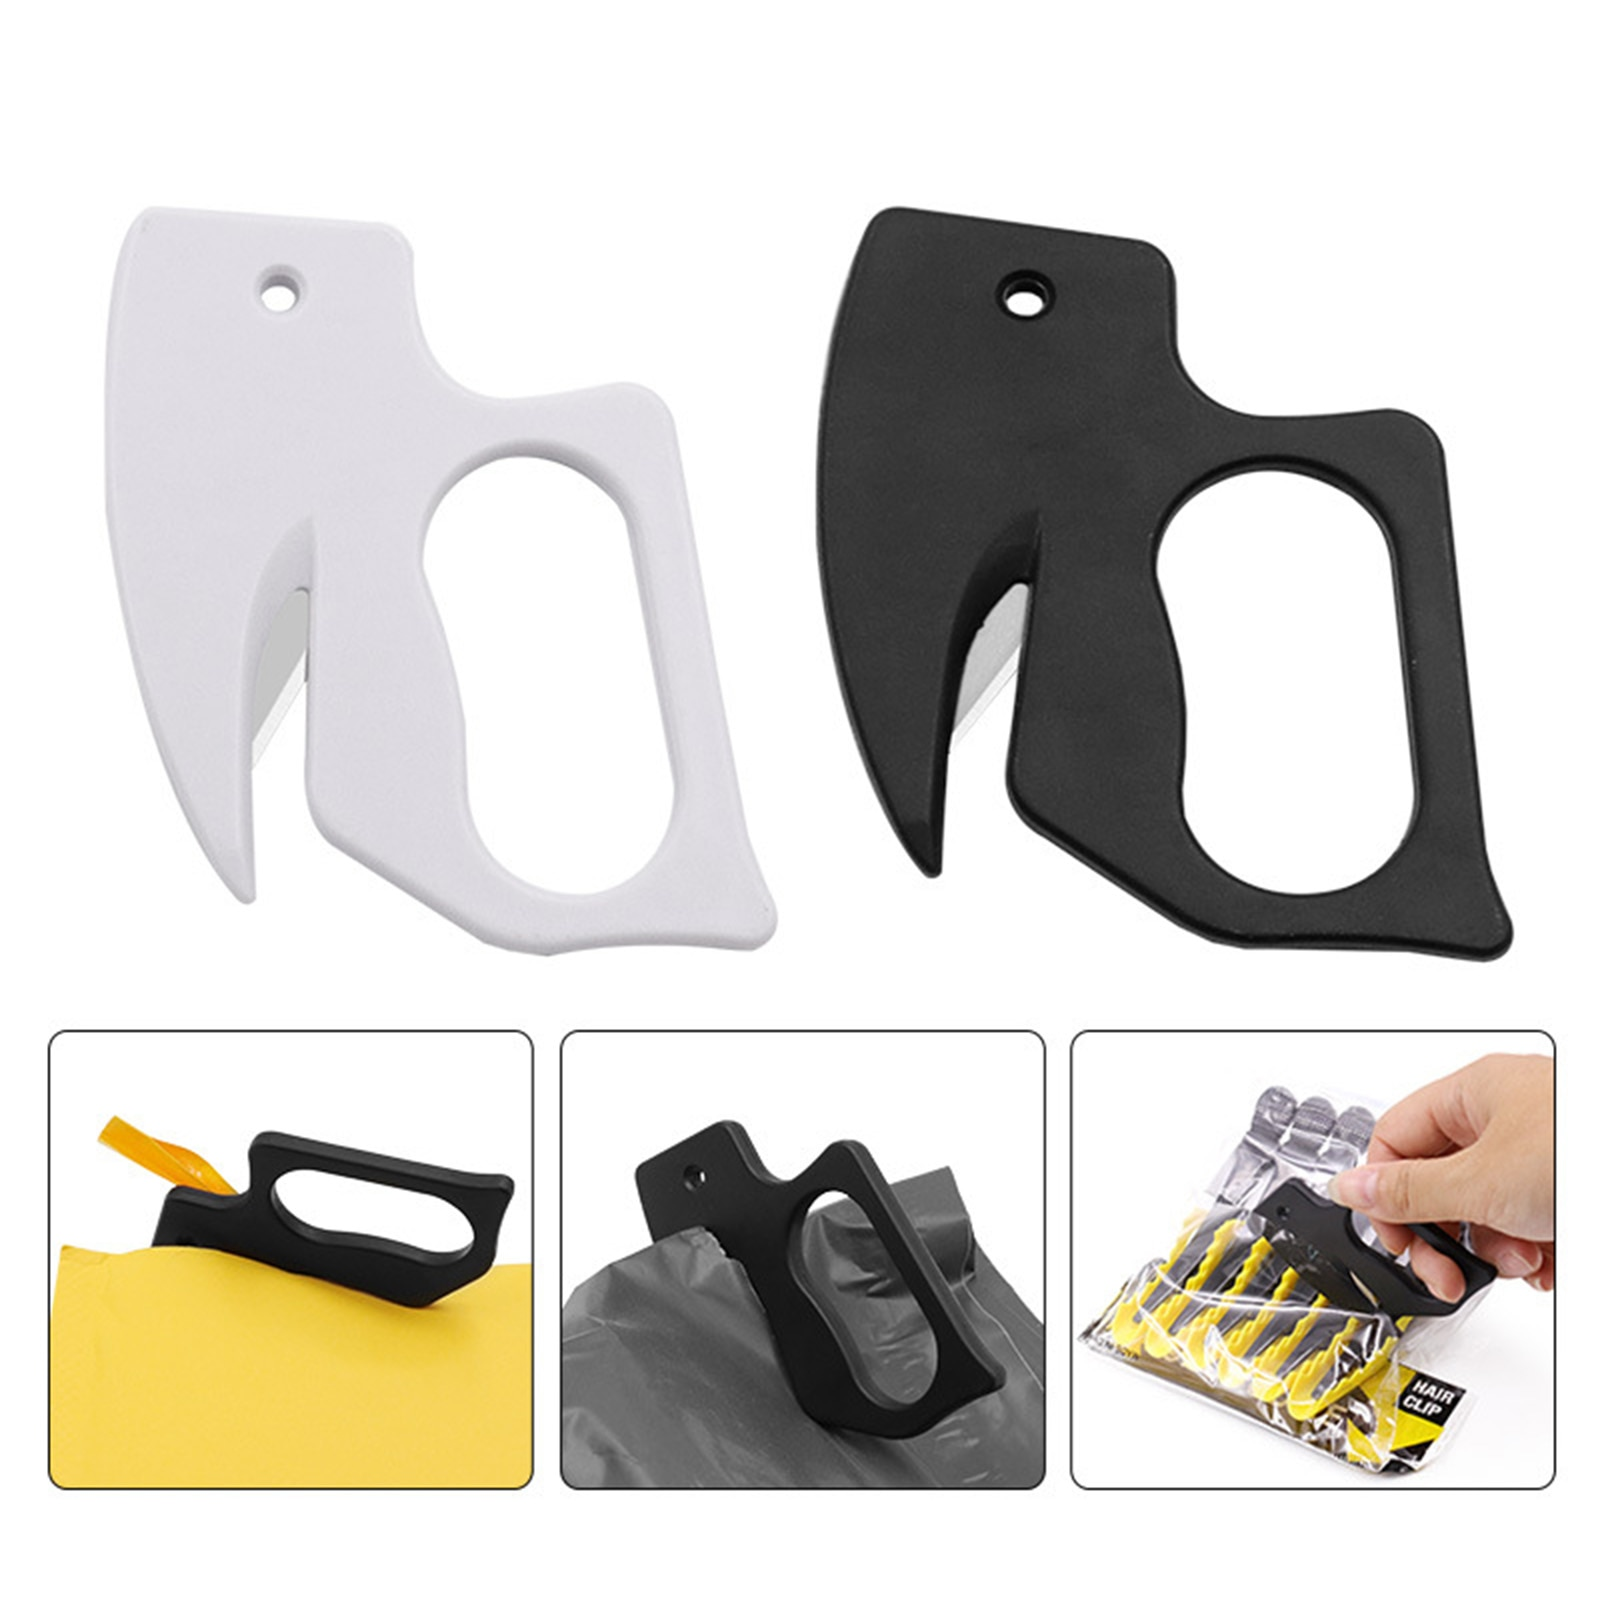 100pcs sharp mail envelope plastic letter opener safety paper guarded cutter blade ce approved pocket tool Plastic Letter Opener Mini Sharp Letter Mail Envelope Opener Safety Papers Guarded Cutter Blade Office Equipment